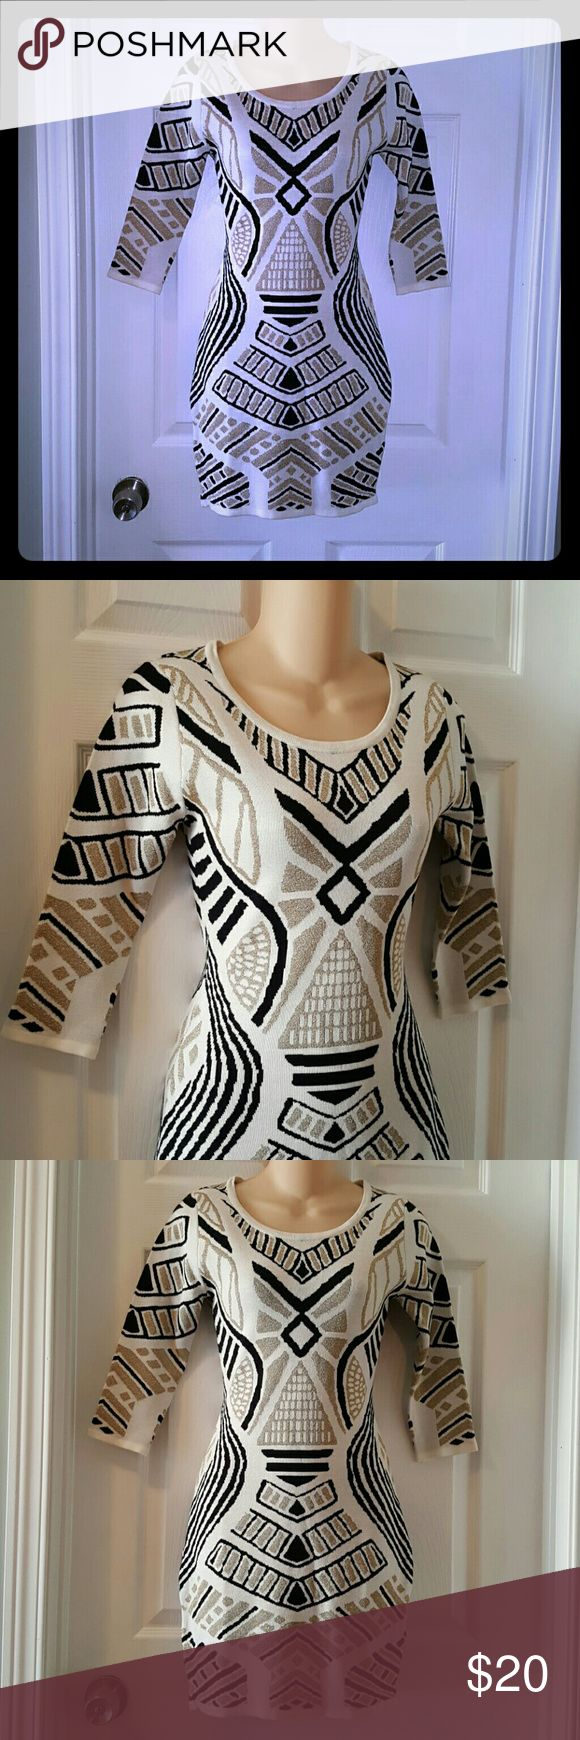 Forever 21 Sweater Dress Size Small New! New! Forever 21 Dresses